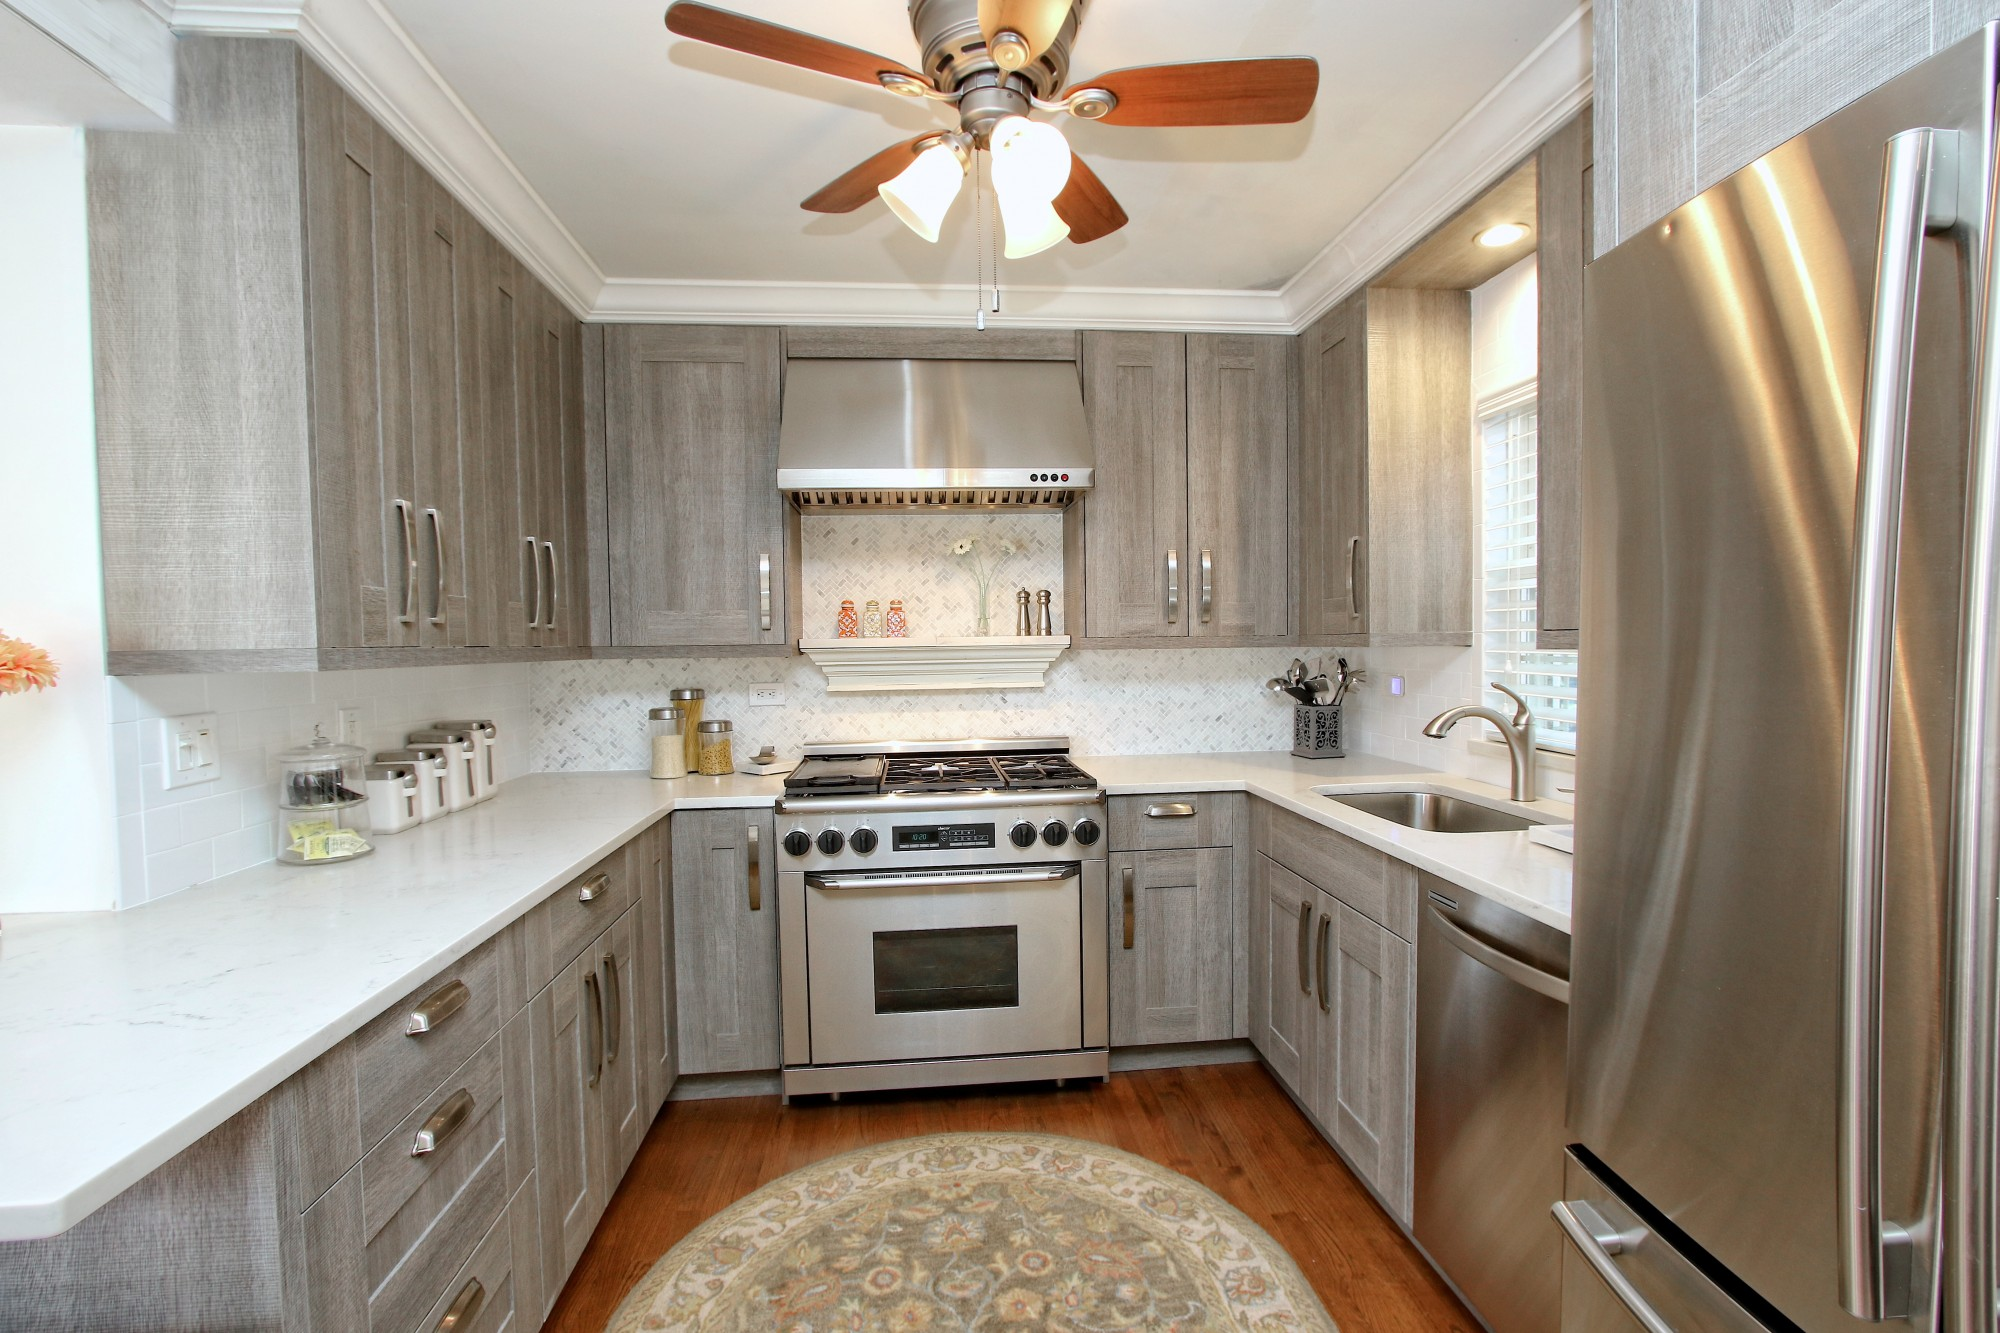 instock kitchen cabinets terry towels victoria  and bath